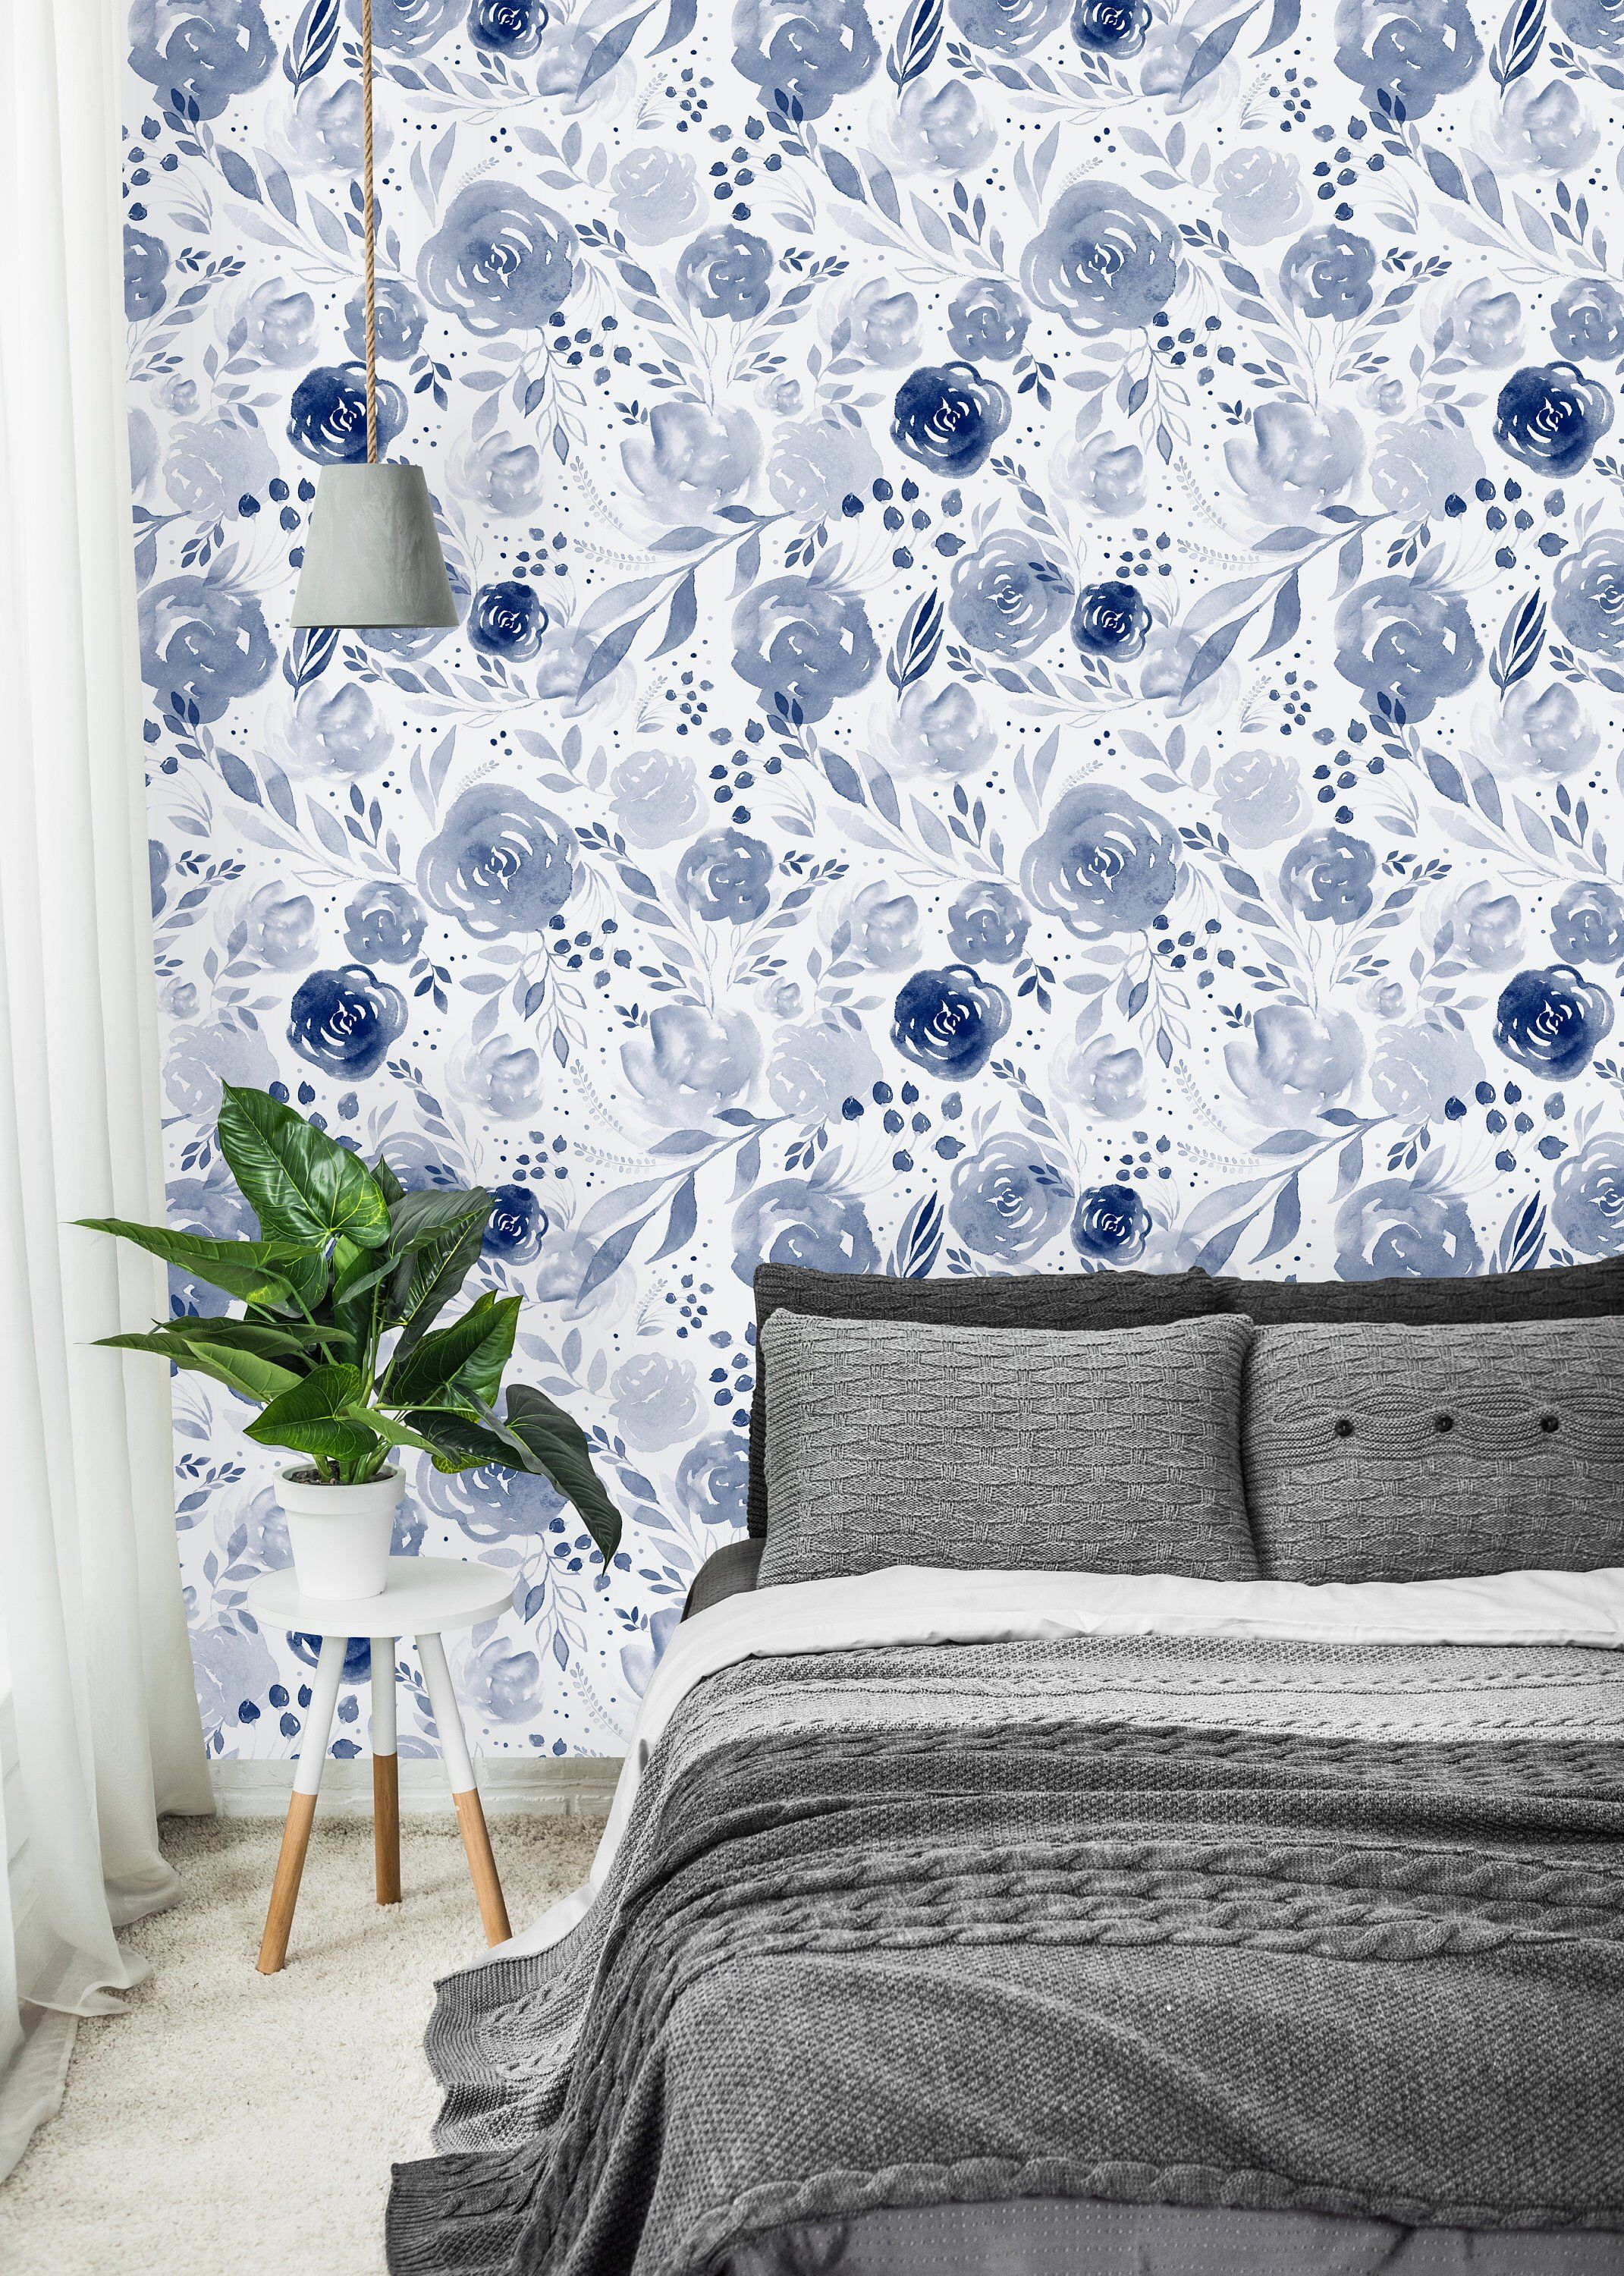 Removable Wallpaper Peel and Stick Wallpaper Self Adhesive